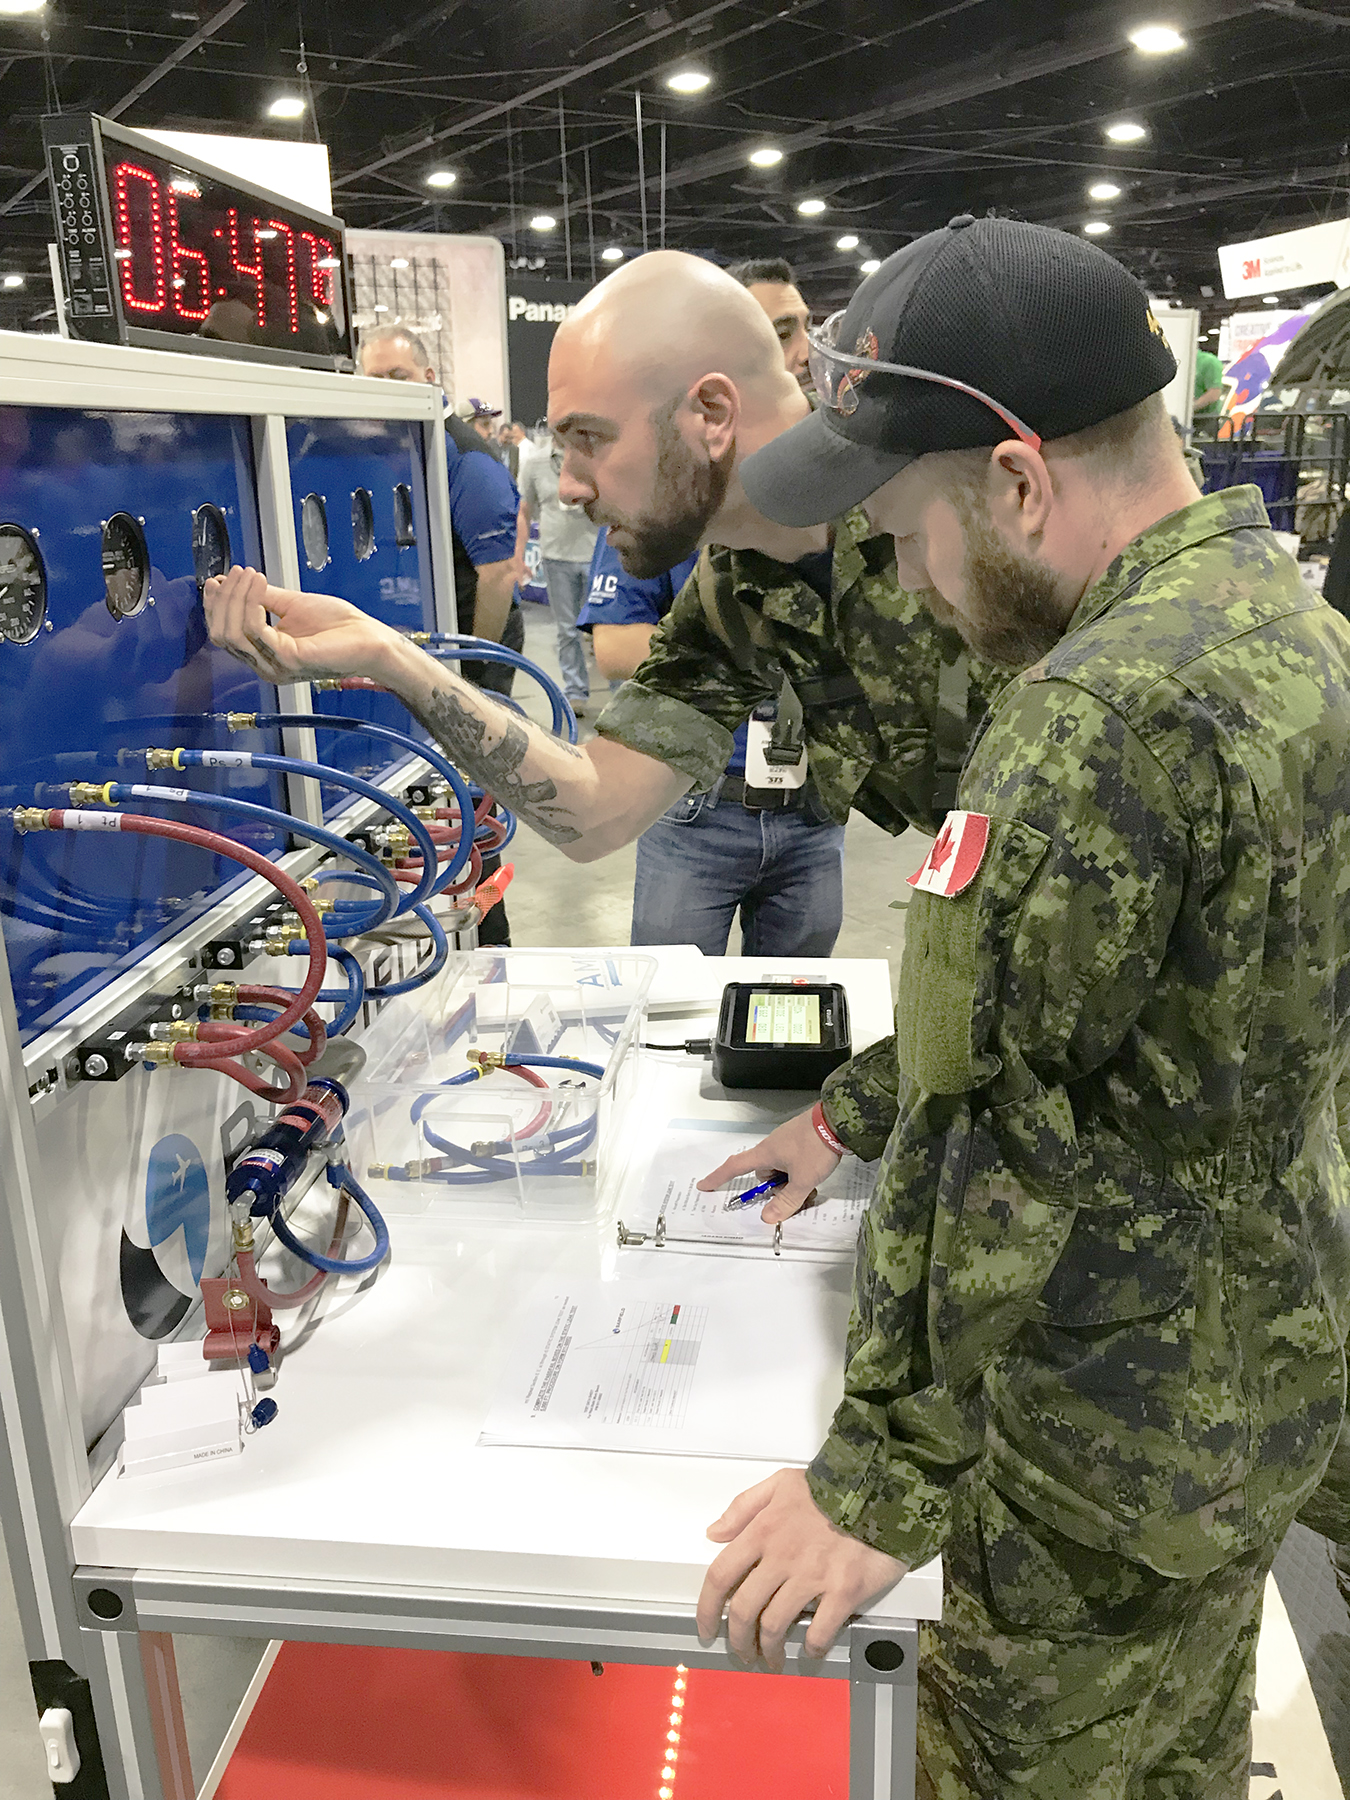 Master Corporal Simon Laurent (foreground), of 442 Transport and Rescue Squadron, guides Corporal Marc-André Duguay, AVS, from 424 Transport and Rescue Squadron, through a troubleshooting procedure during the Aerospace Maintenance Competition. Both were members of the RCAF SAR Maintenance Team. PHOTO: RCAF